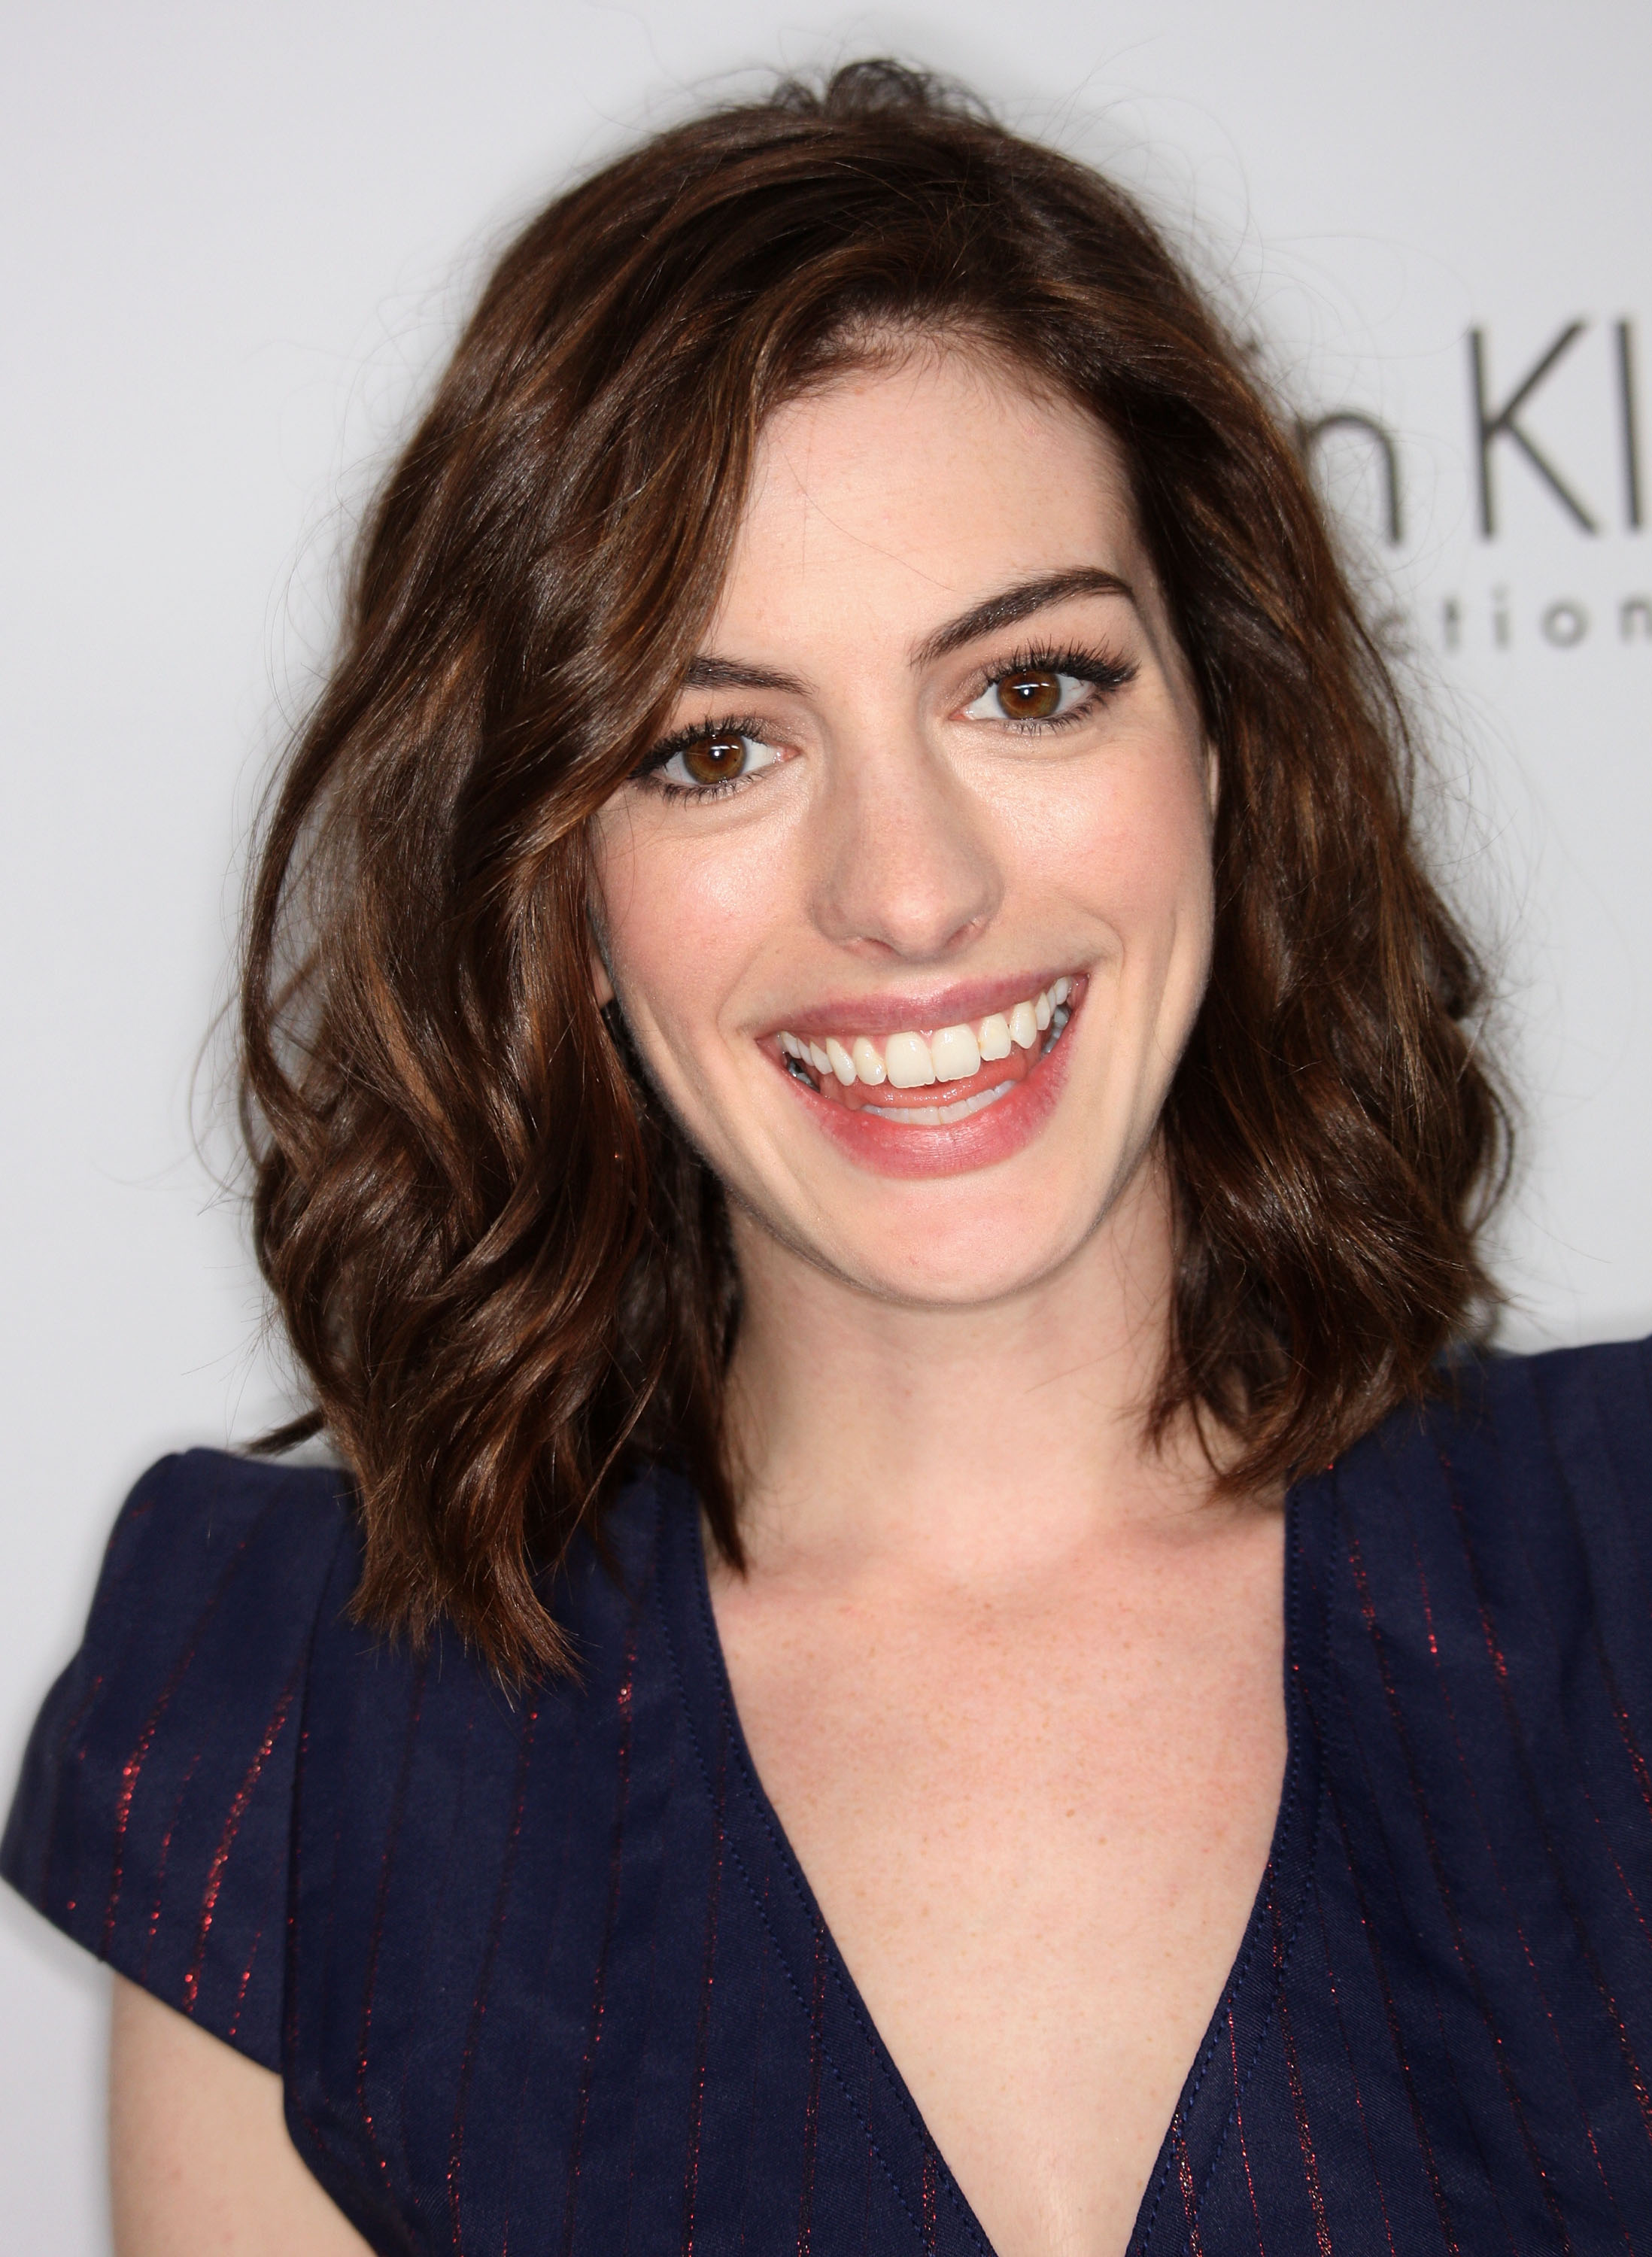 59285_Celebutopia-Anne_Hathaway-15th_annual_Women_In_Hollywood_Tribute_-08_122_78lo.jpg